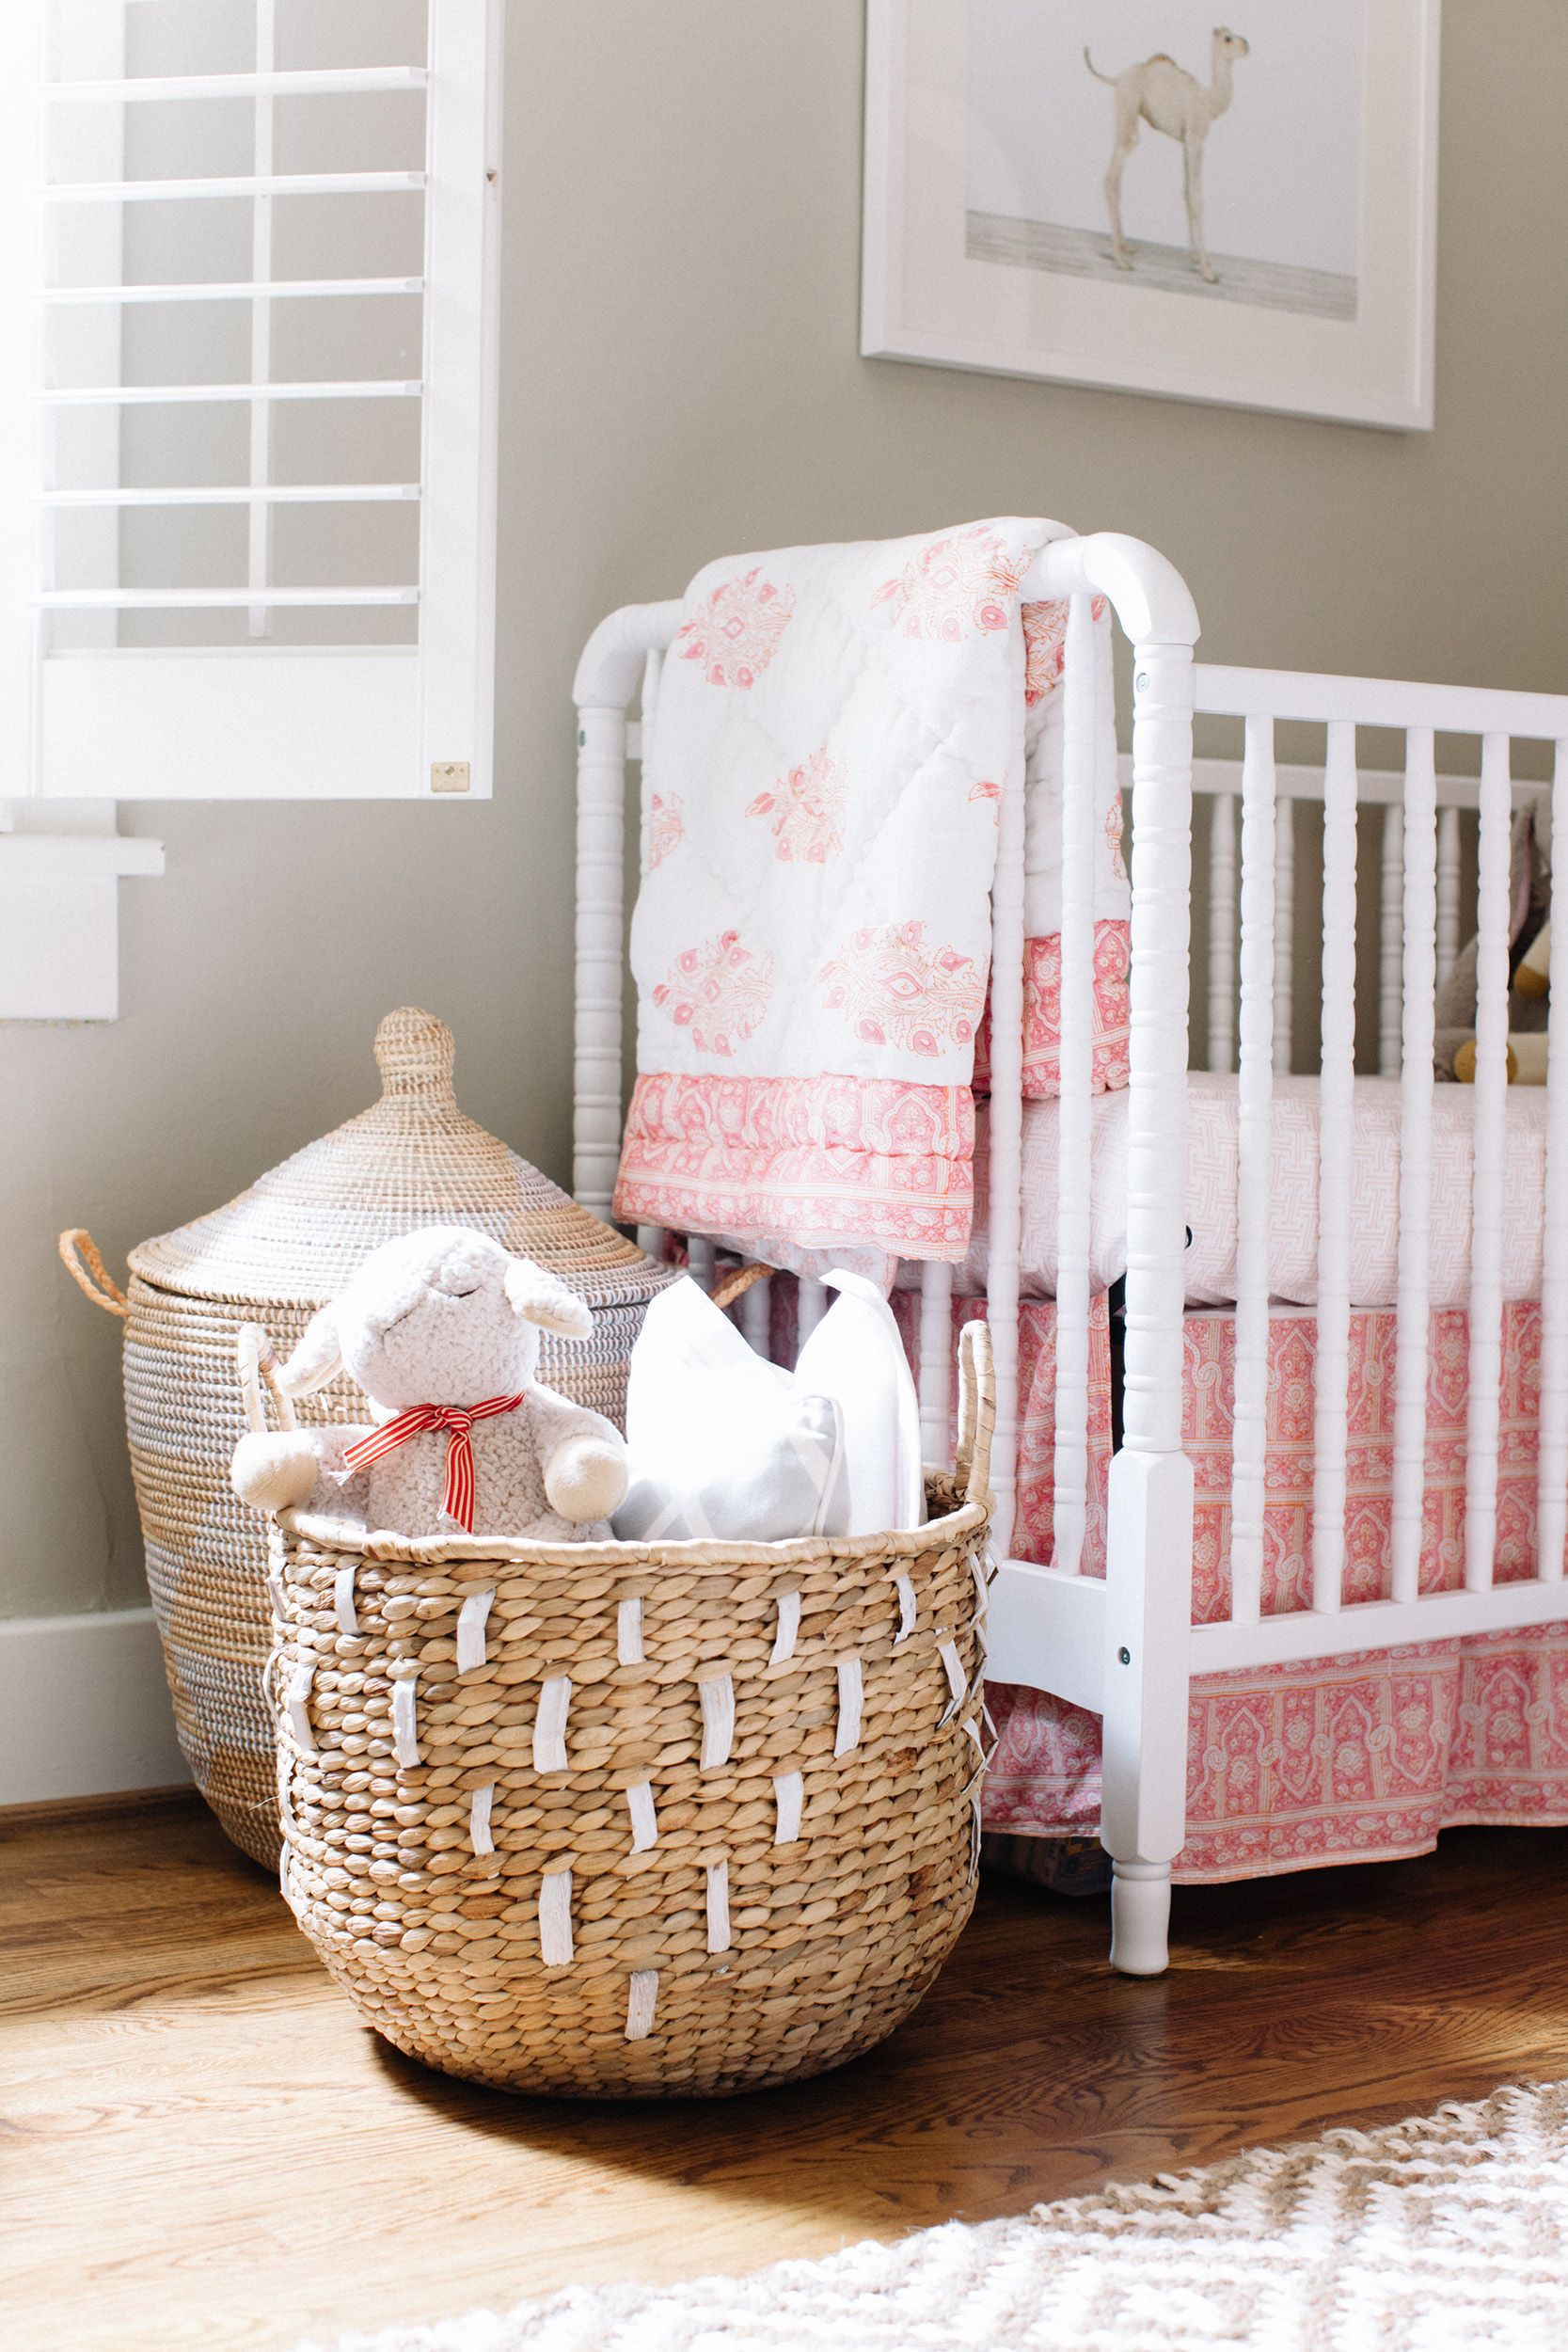 co by leslee mitchell design pencil twin gen nursery pin paper room sohr styling girls photo